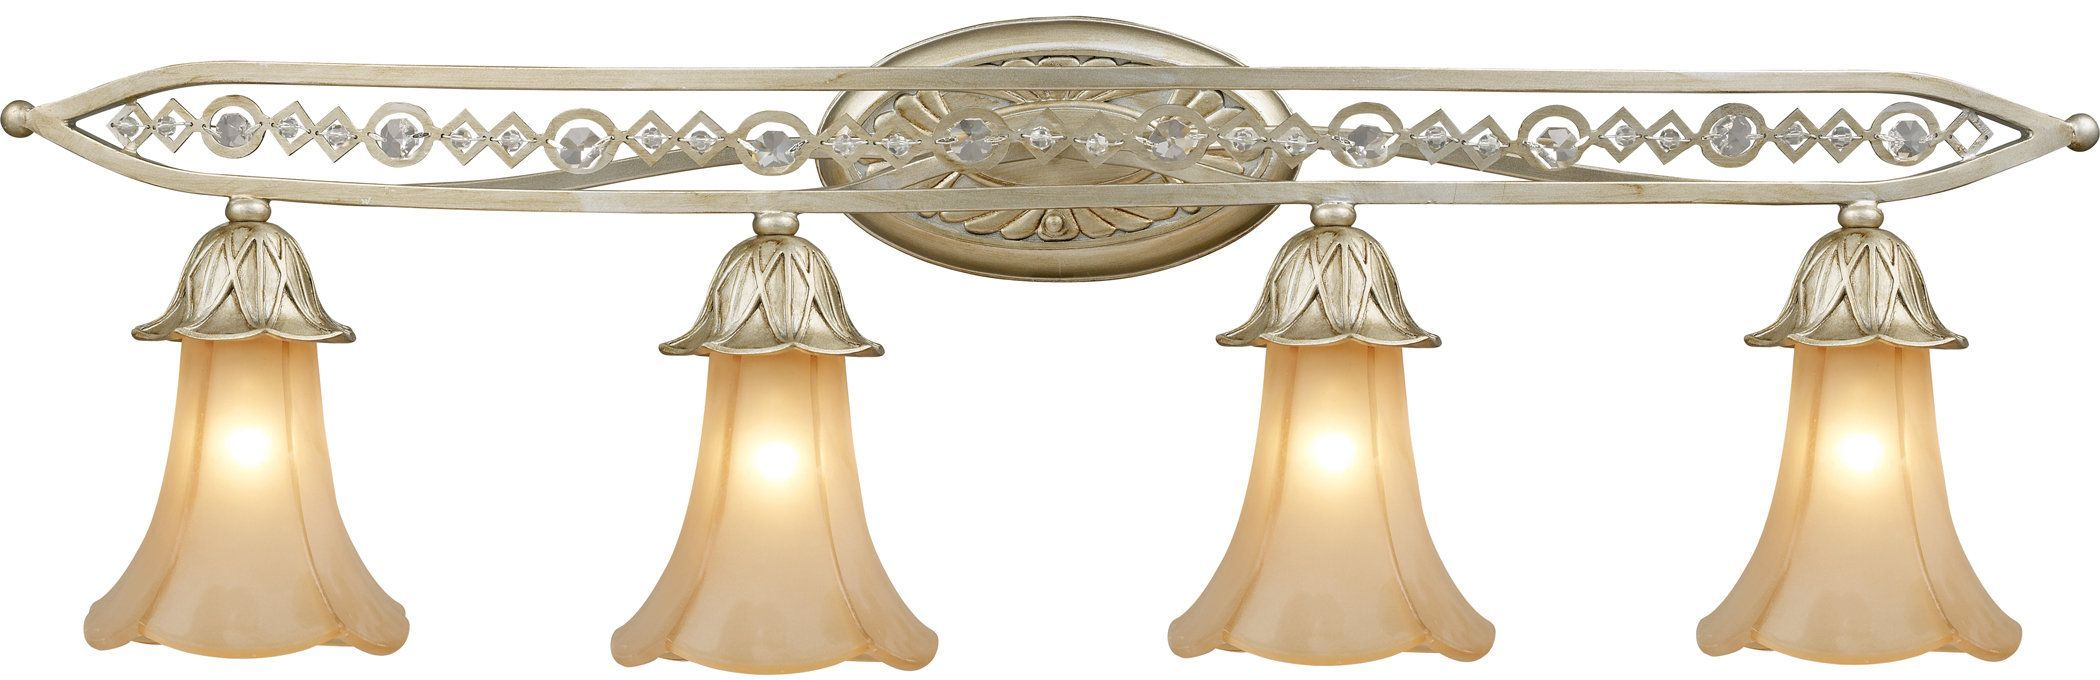 "ELK Lighting 3822/4 Chelsea 4 Light 39"" Vanity Fixture with Frosted Glass Shade Aged Silver Indoor Lighting Bathroom Fixtures Vanity Light"